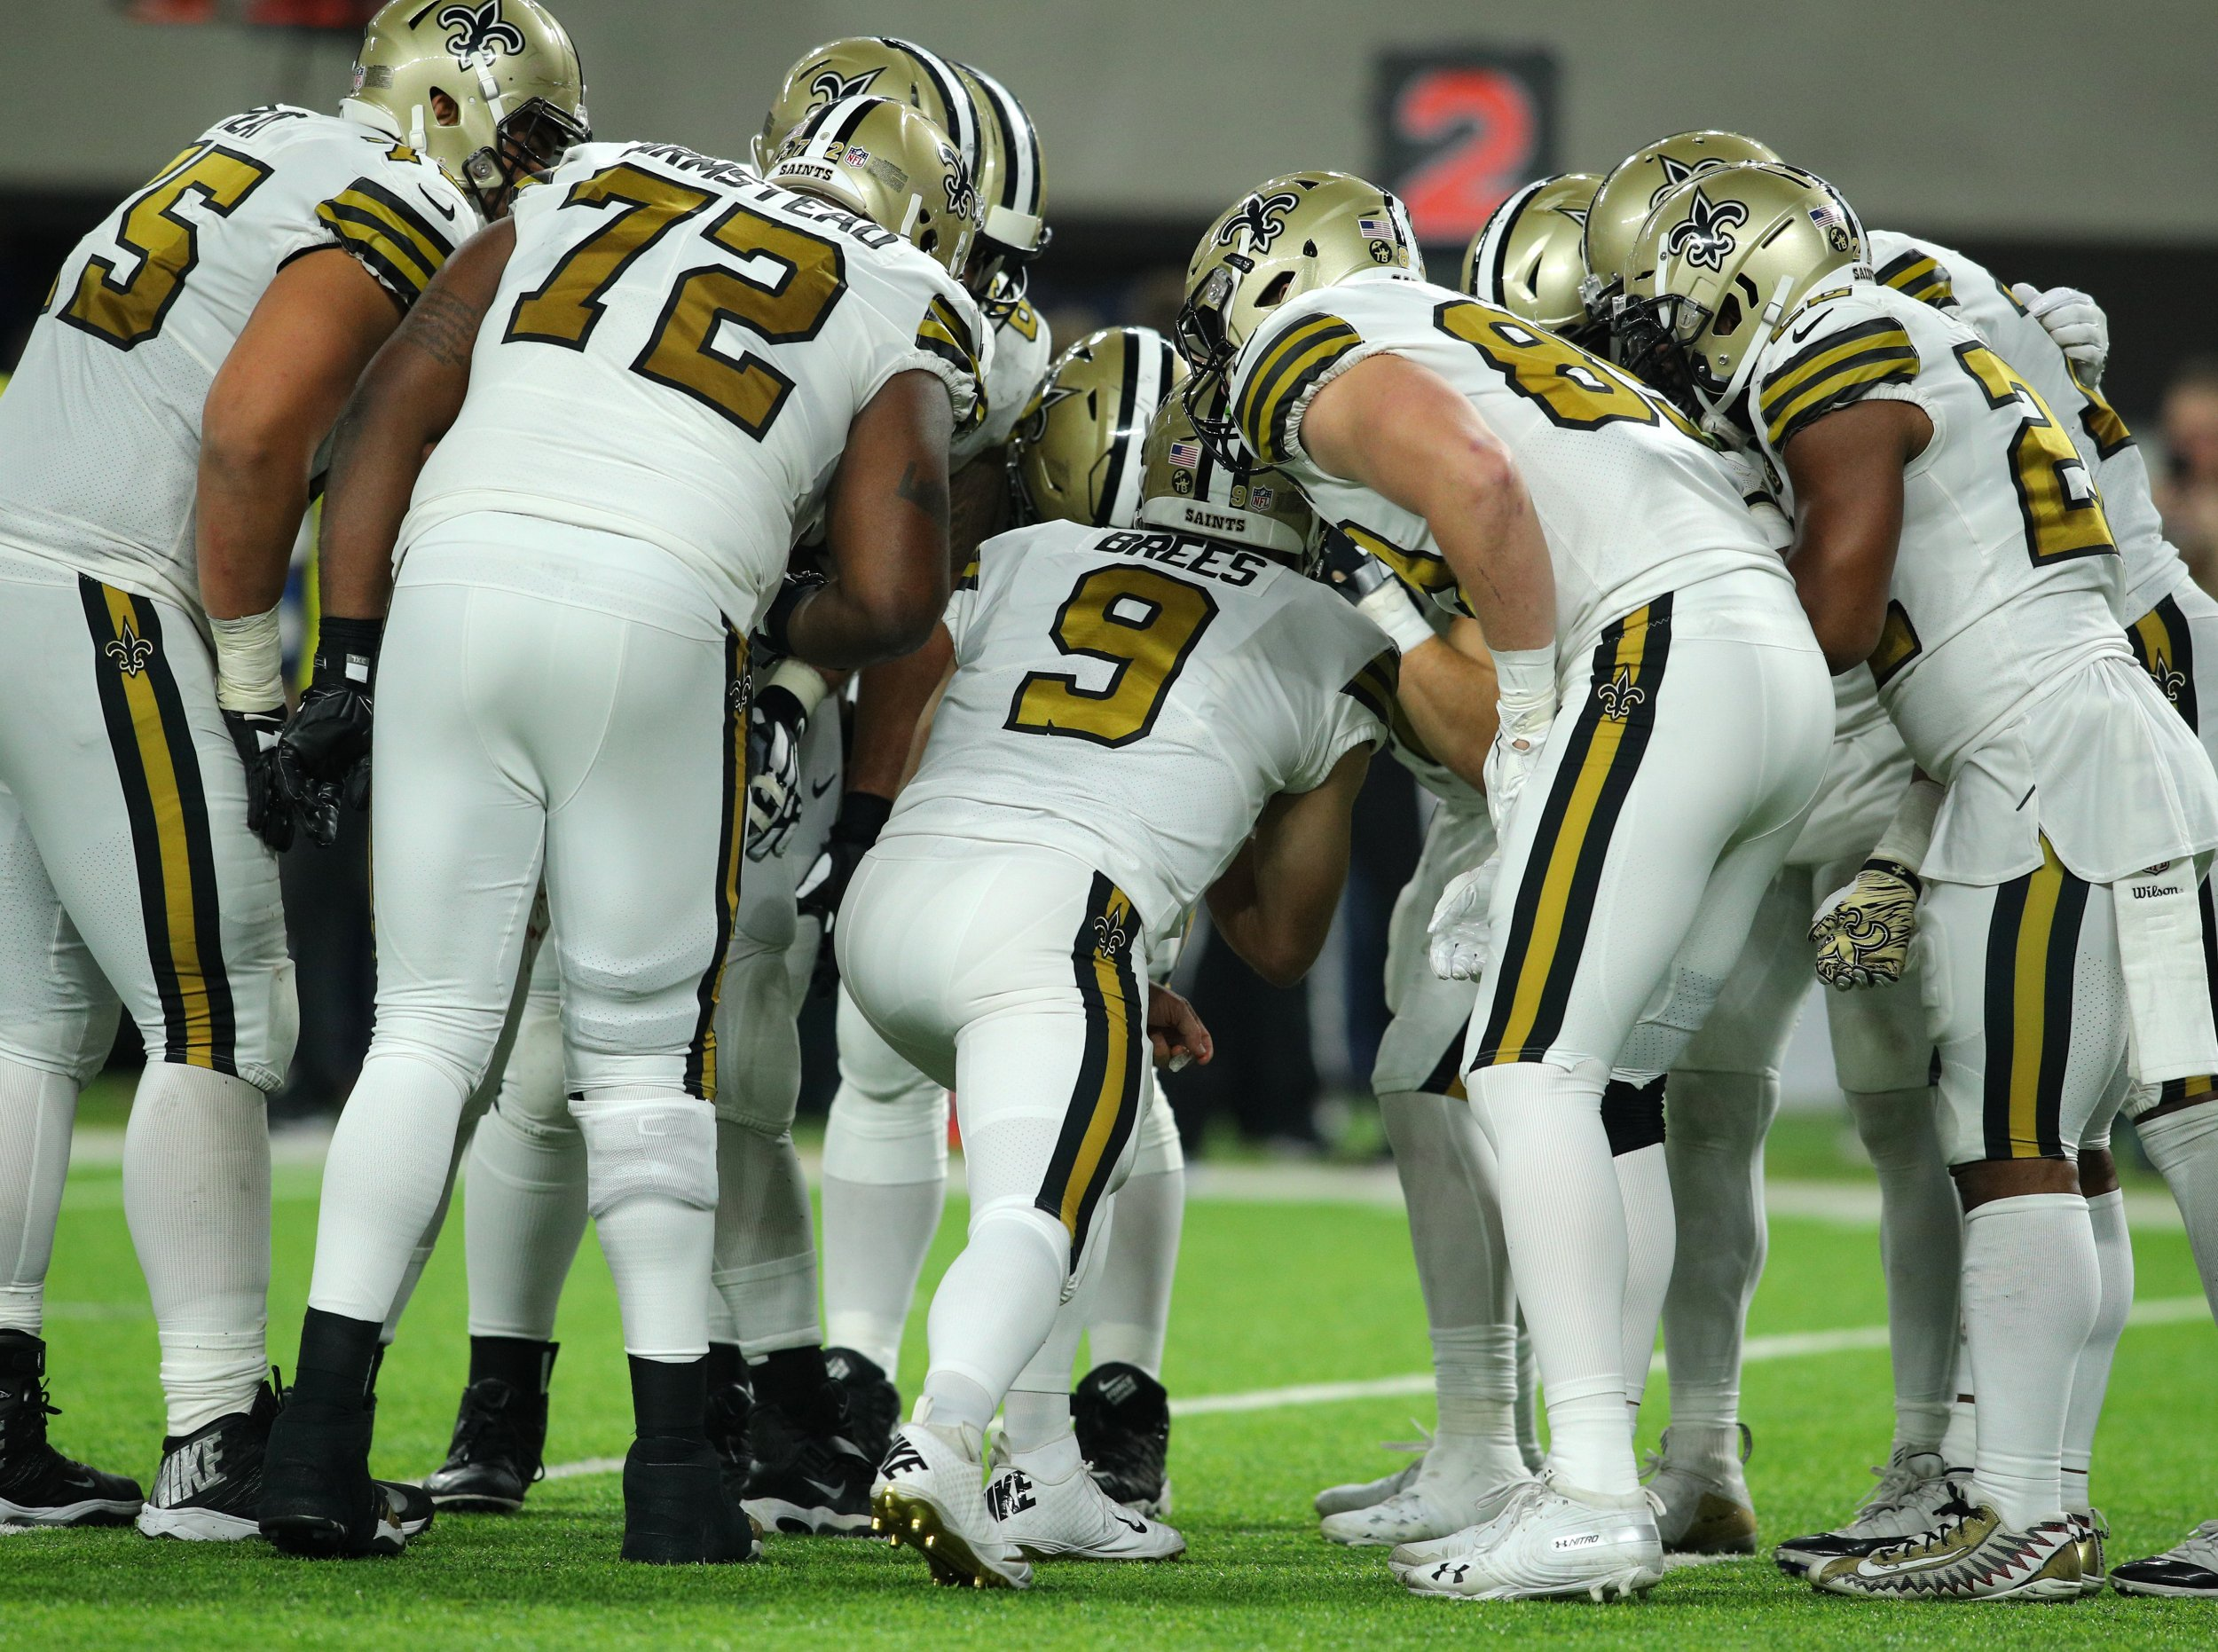 Week 9 NFL Betting Odds and Predictions: Spread, Expert Picks for